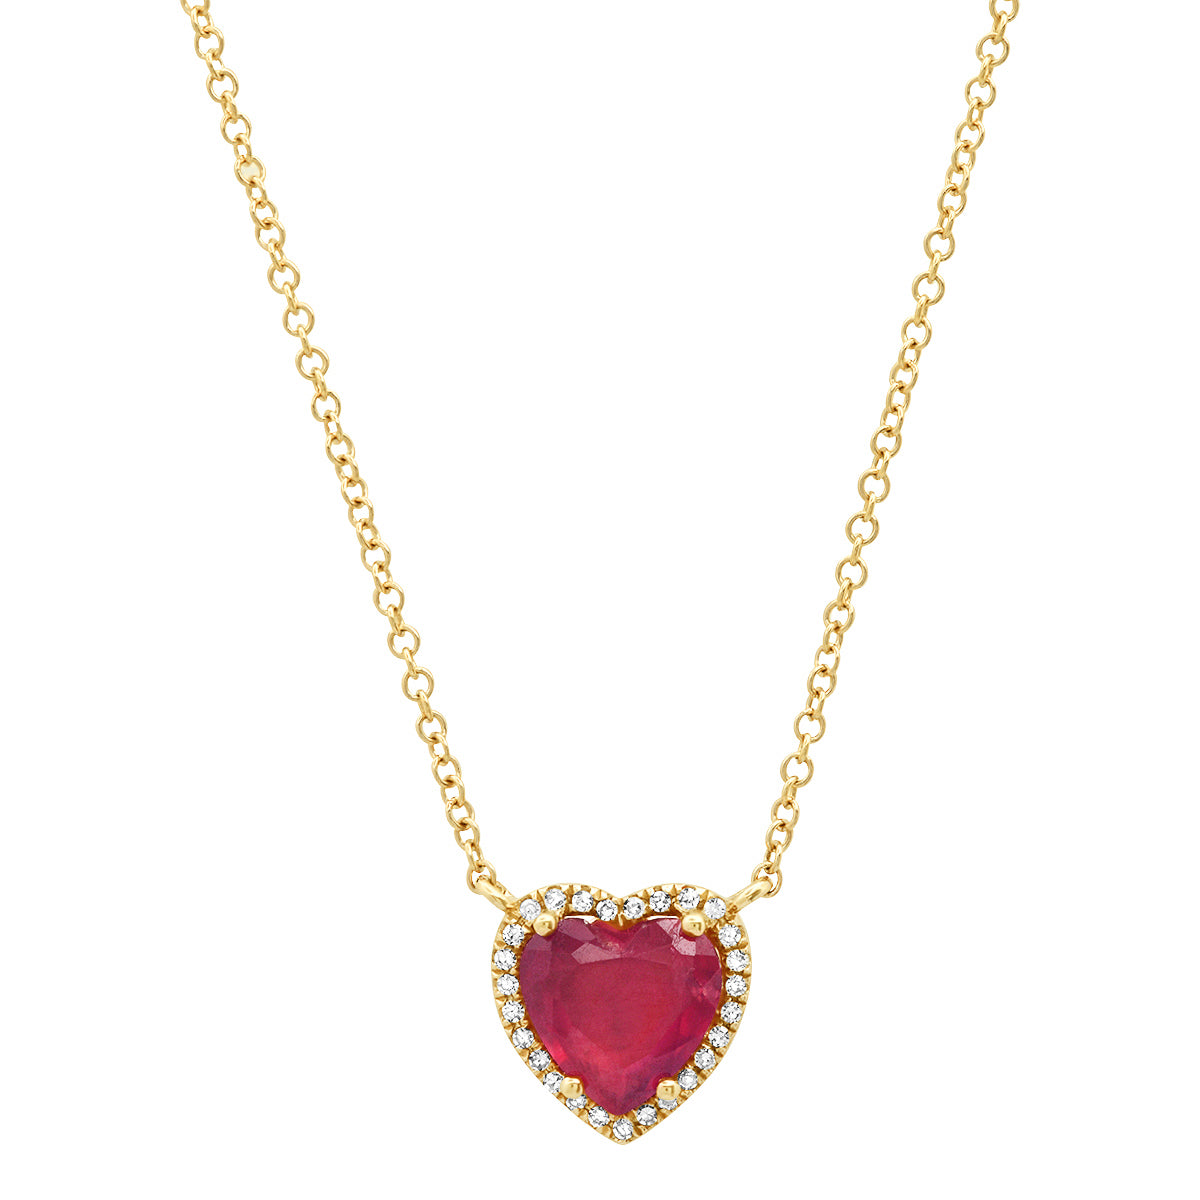 Gemstone Heart with Diamond Halo on Thin Cable Chain Necklace